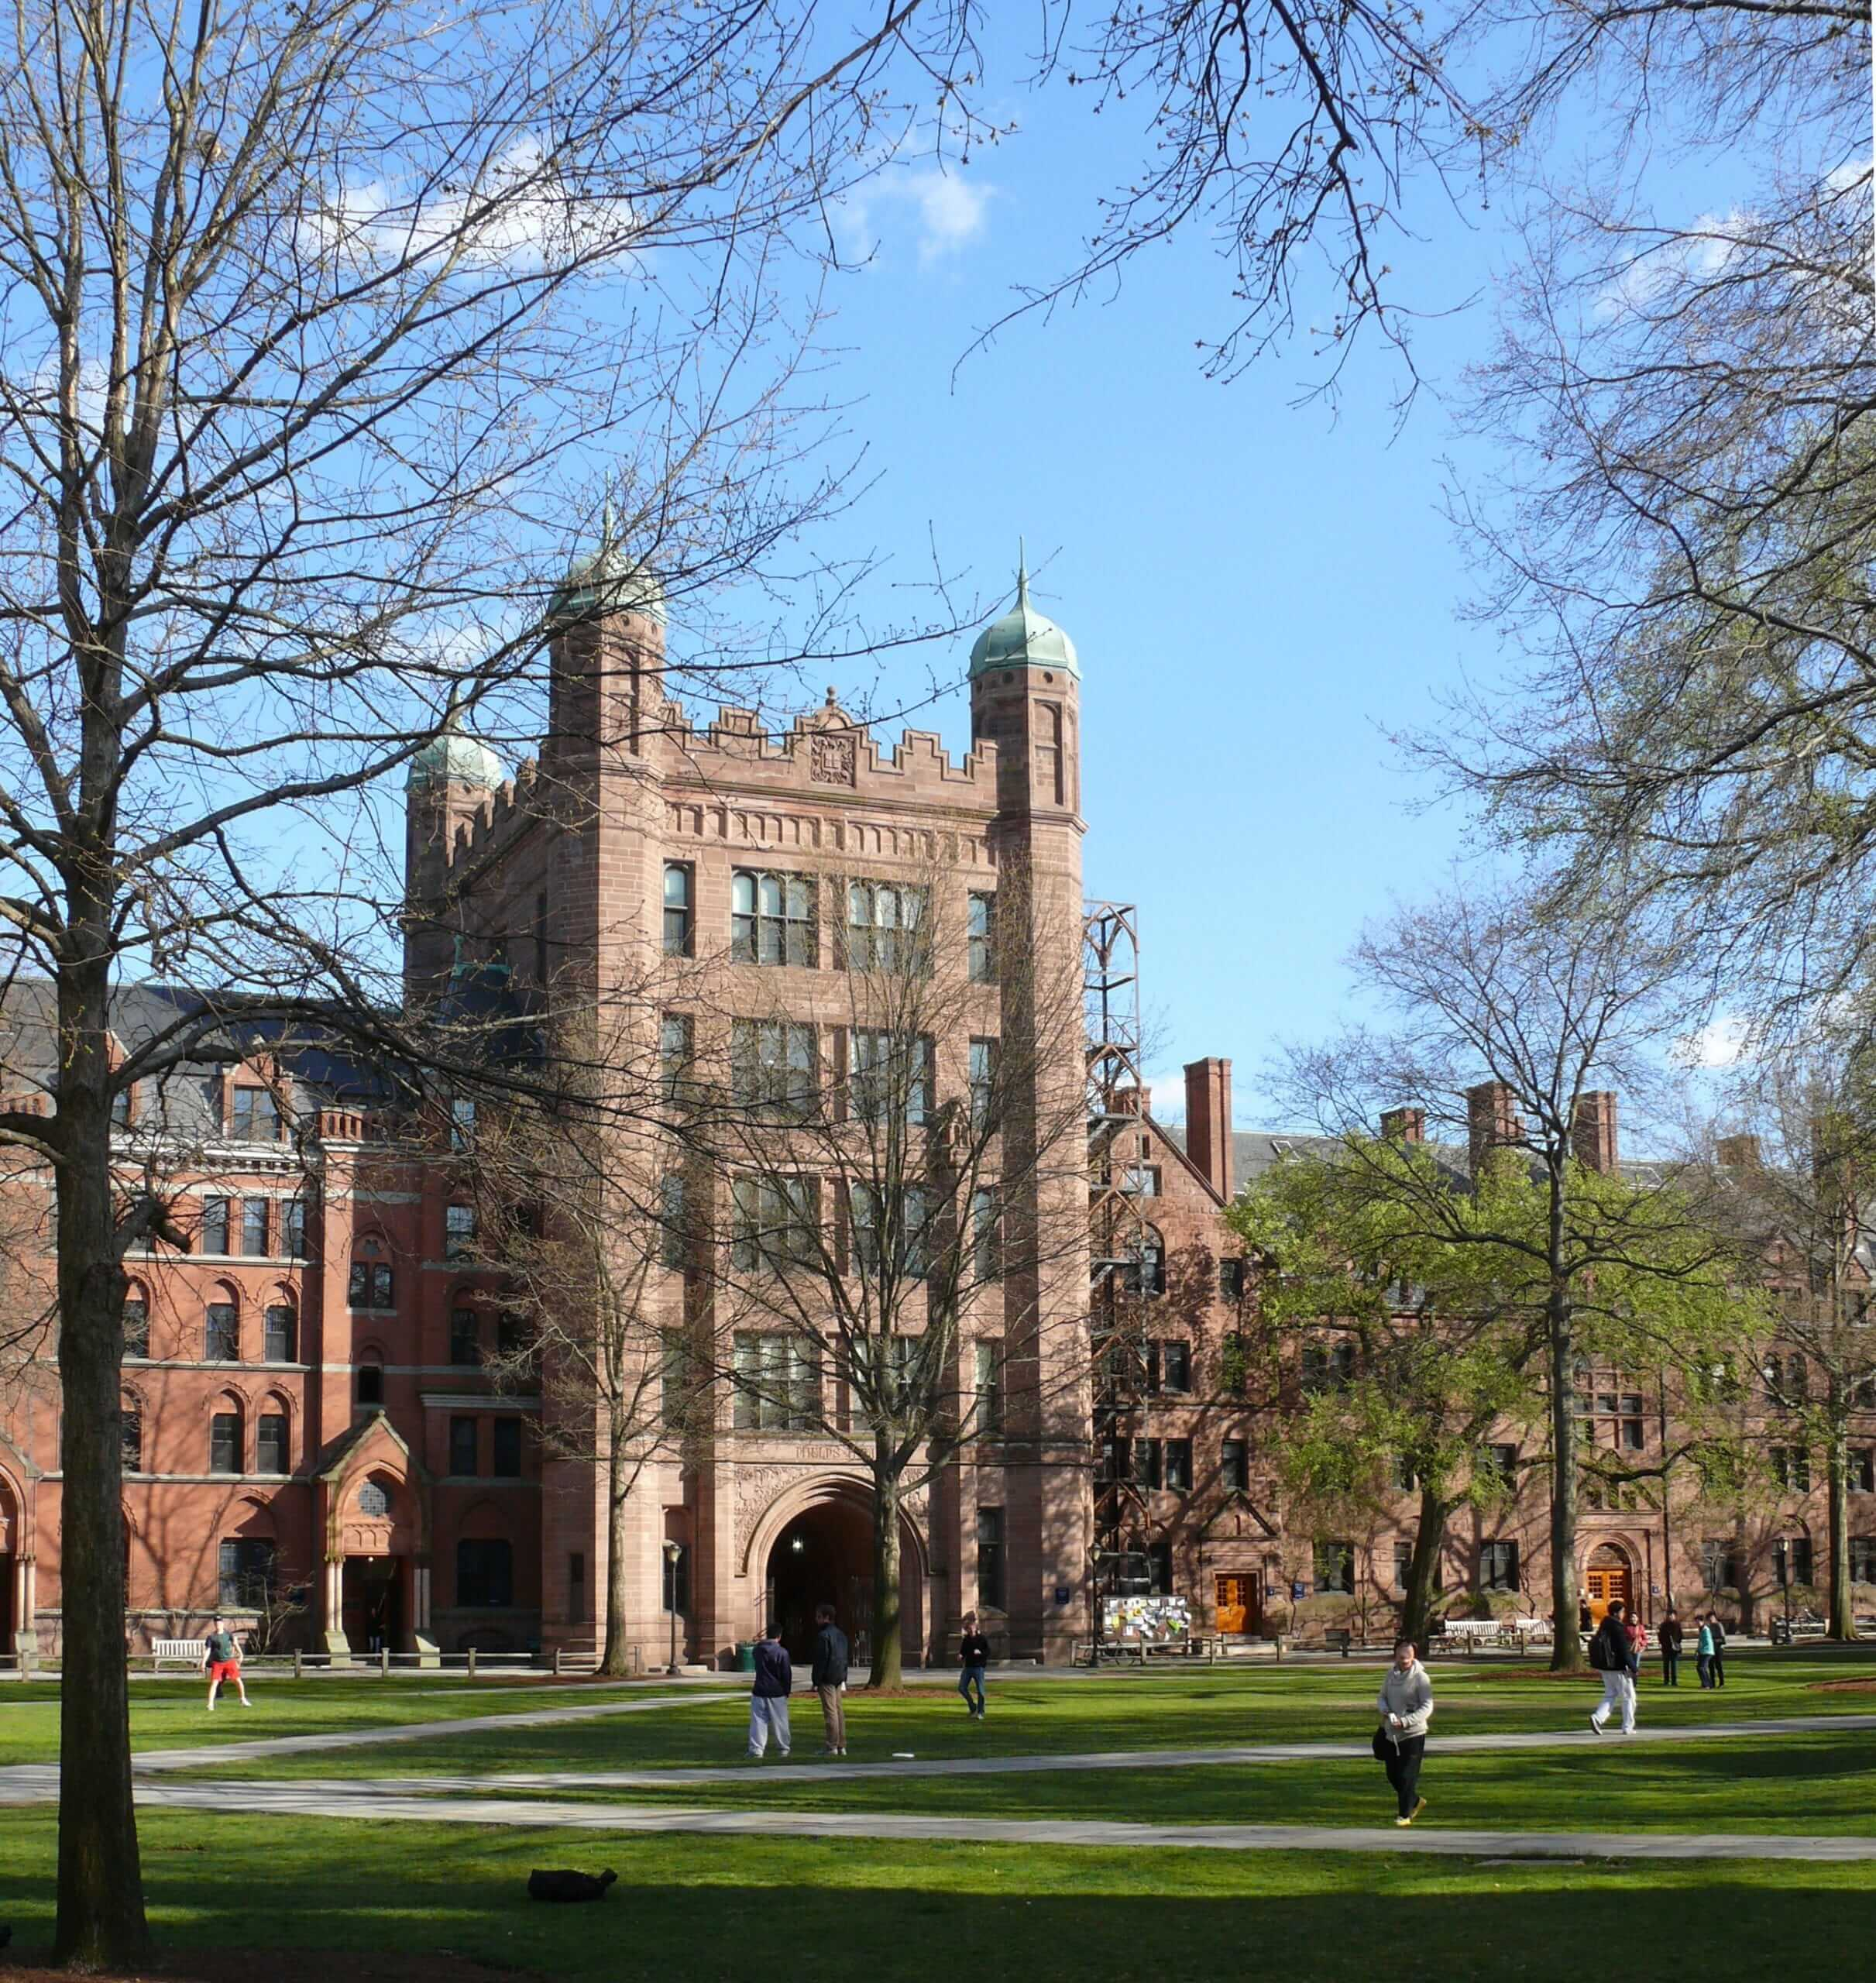 The Ivy League: key takeaways from 2020